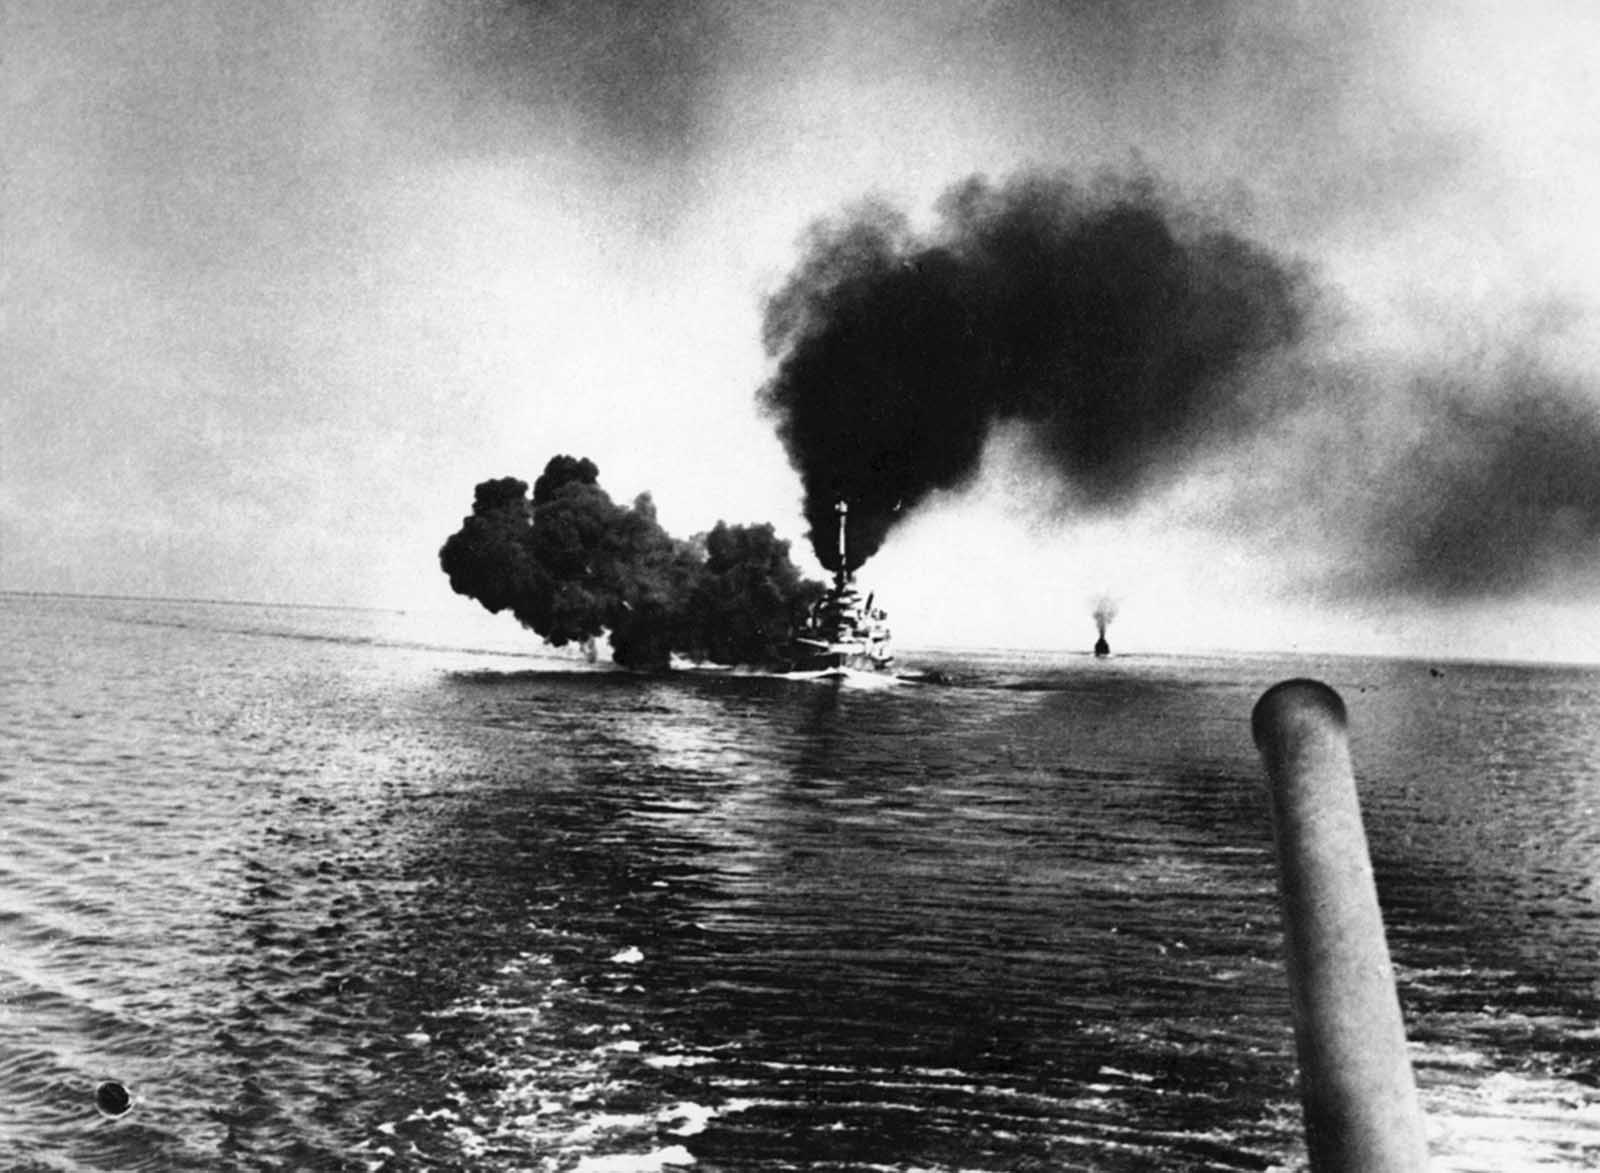 Imperial German Navy's battle ship SMS Schleswig-Holstein fires a salvo during the Battle of Jutland on May 31, 1916 in the North Sea.